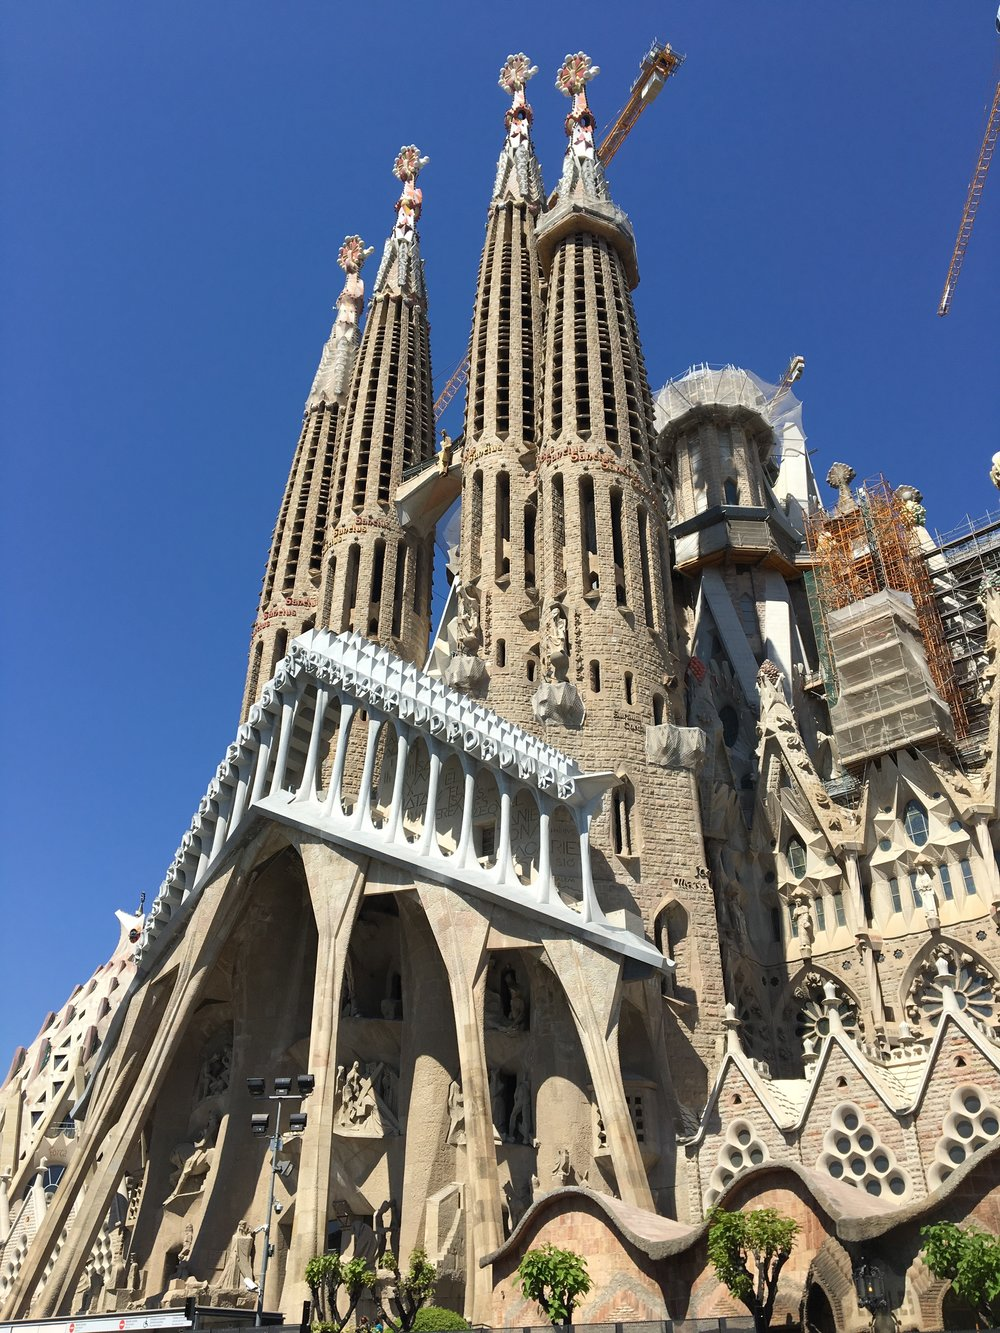 One side of the Sagrada Familia, which was built to reflect the way nature represents Heaven, Hell, and God's word.